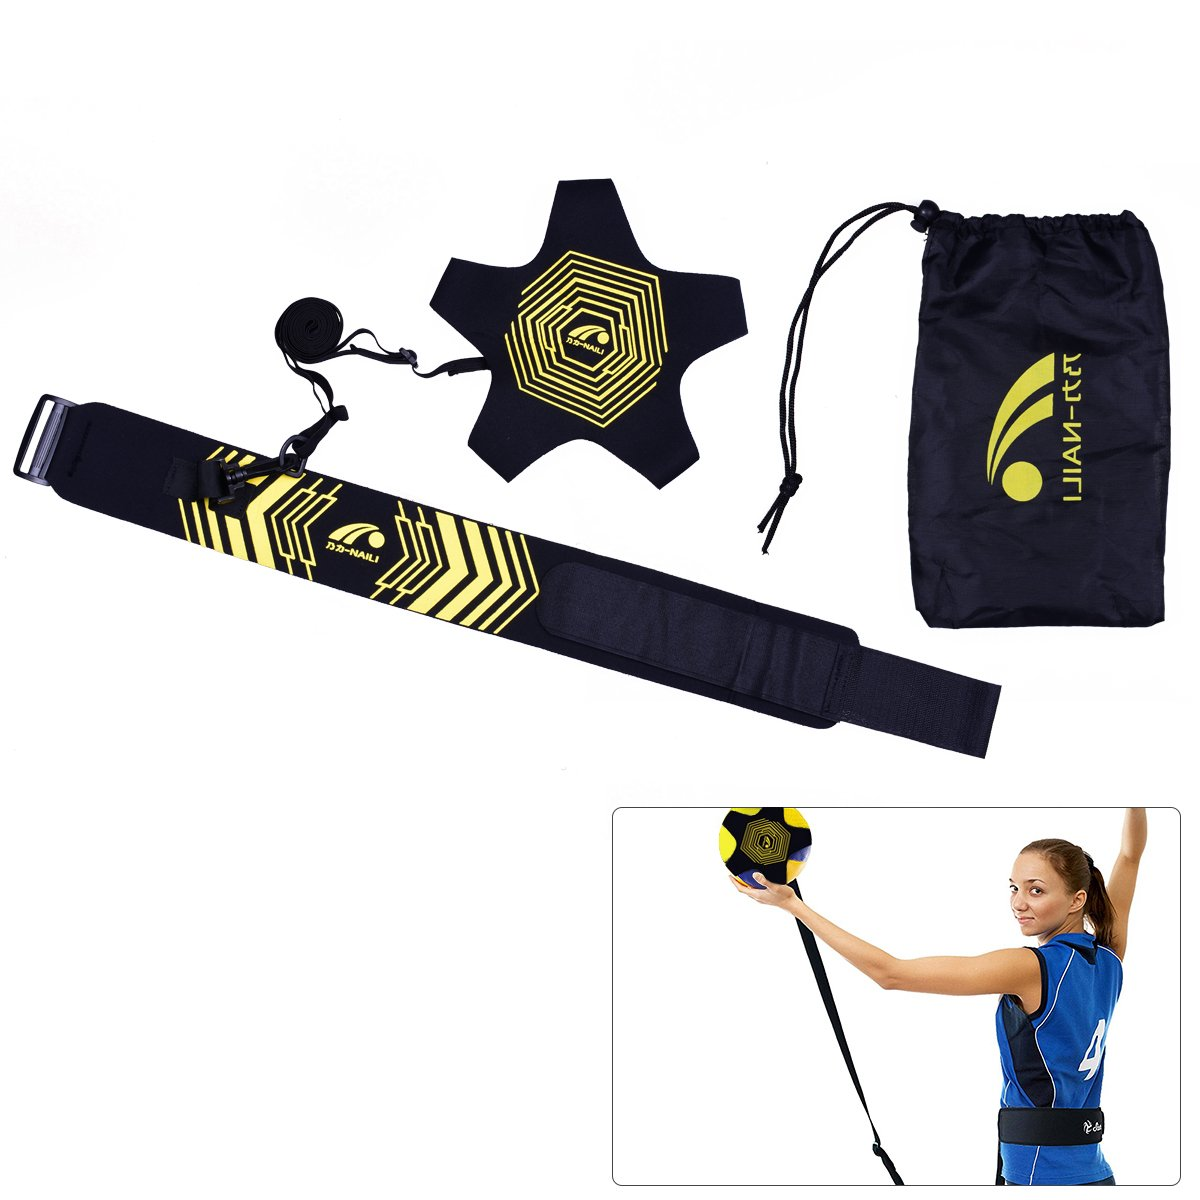 YoungRich Football Trainer Soccer Volleyball Training Aids Hands Free Solo Practice Including Belt Ball Bag Elastic Rope Adjustable Breathable Universal for Kids Adult Training Practicing